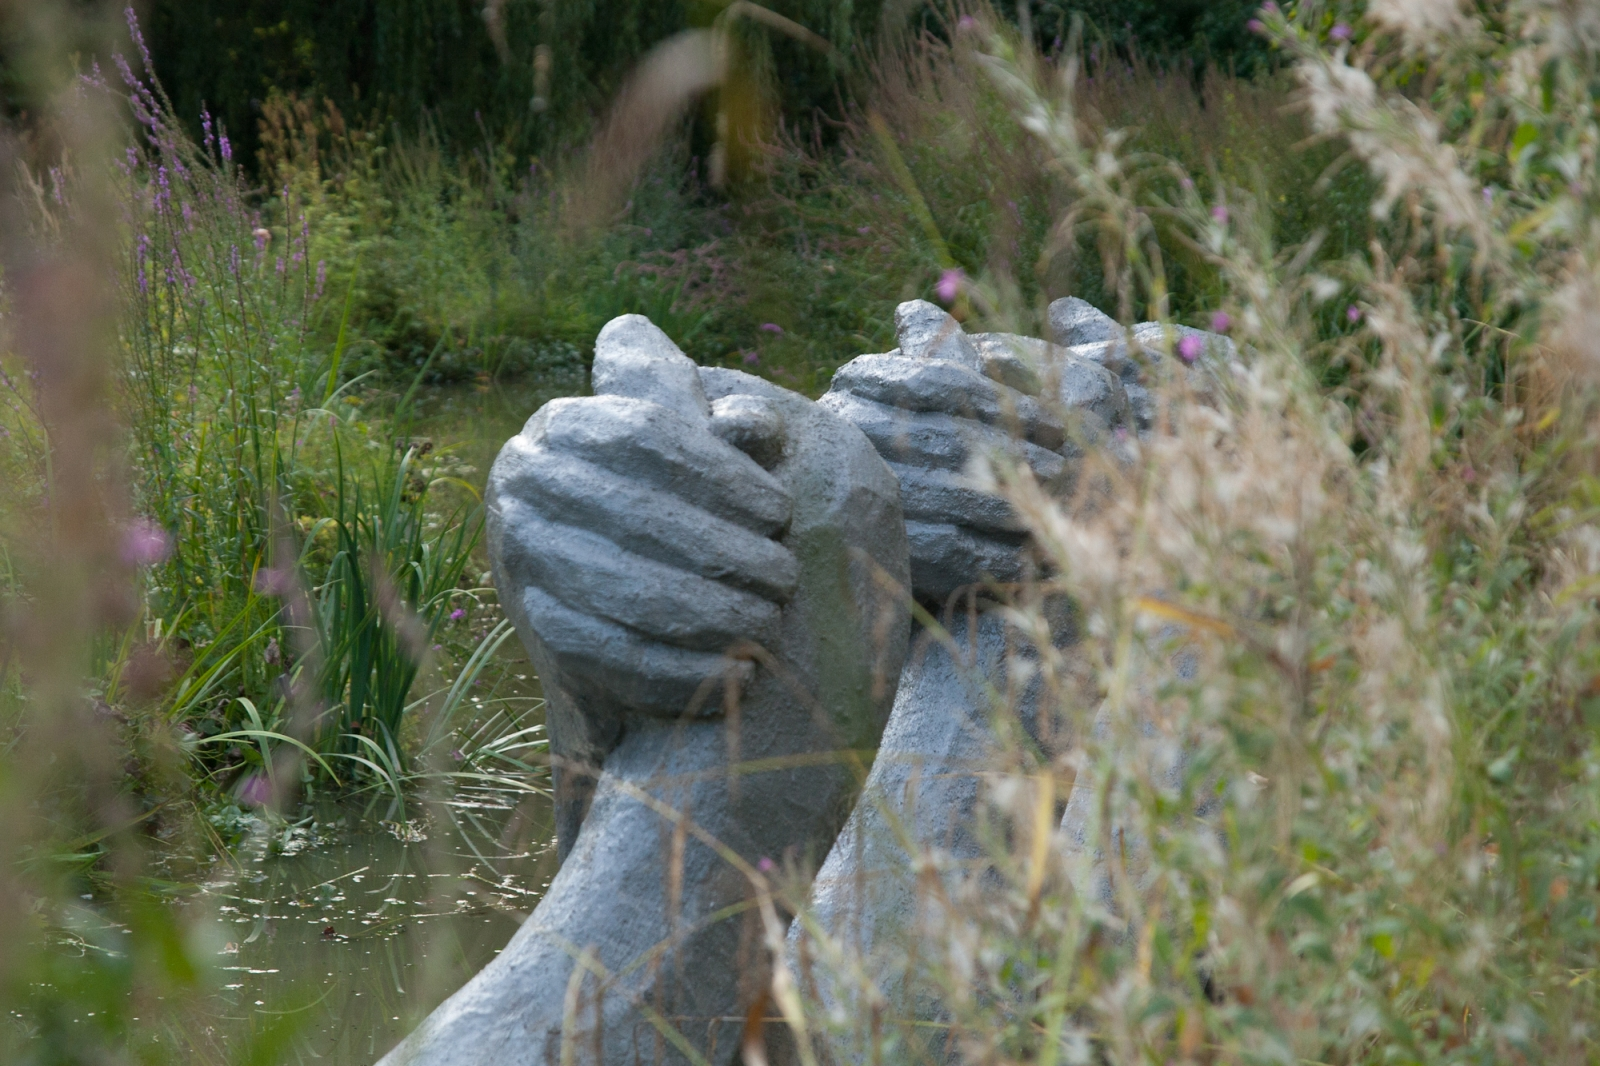 Fight Club, Bras de Fer, Polyester Resin, Concrete, Styrofoam, Steel, 150 cm x 180 cm x 60 cm x 3 elements, Biennale de Yerres, permanent collection, Parc Caillebotte, Yerres, 2012